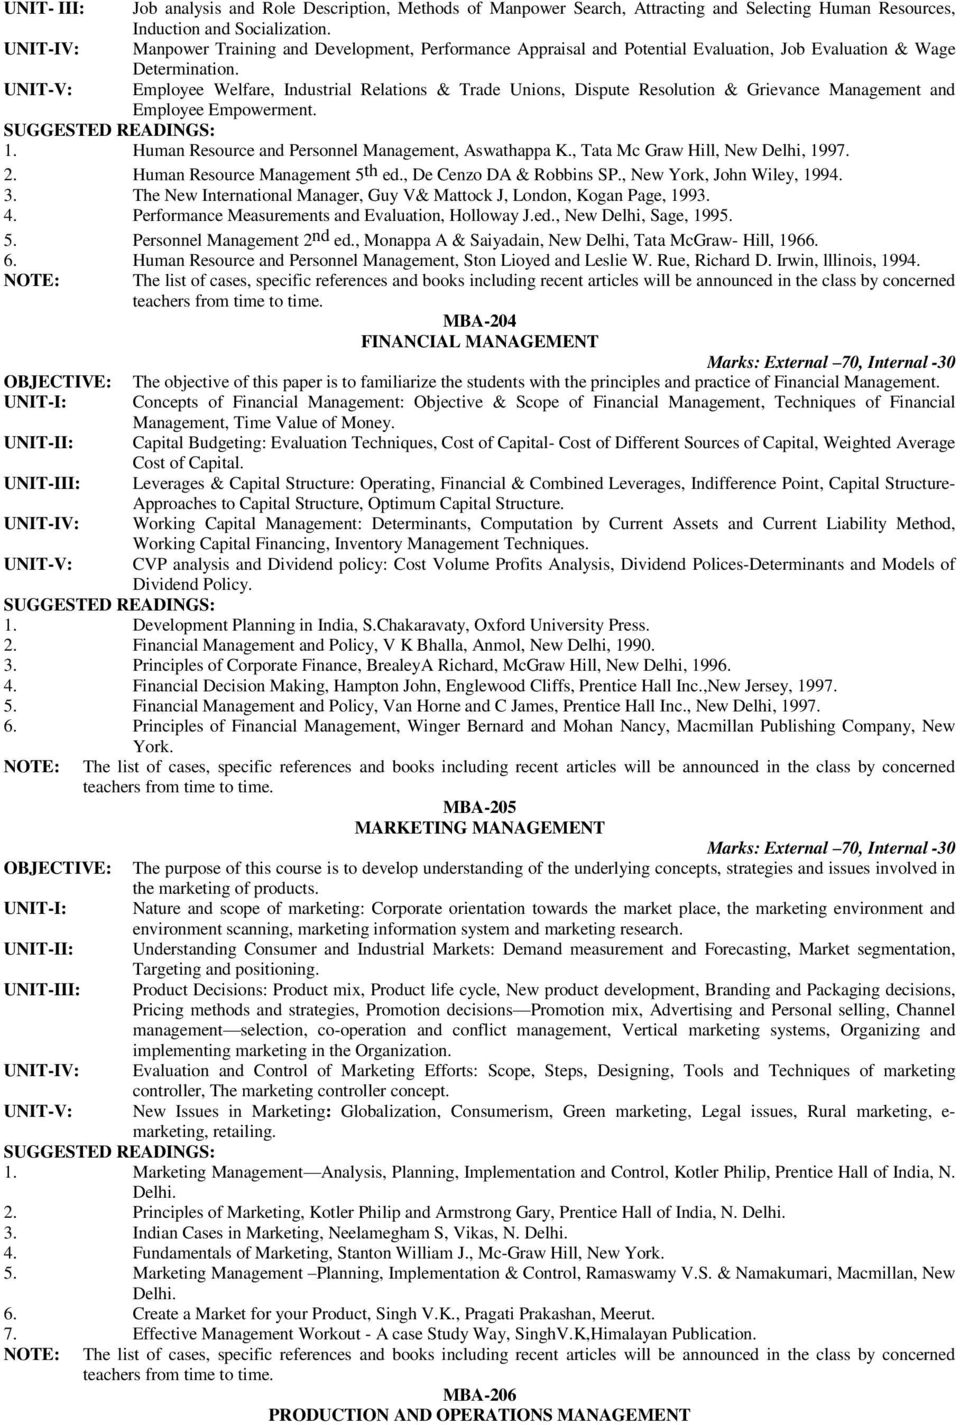 Employee Welfare, Industrial Relations & Trade Unions, Dispute Resolution & Grievance Management and Employee Empowerment. 1. Human Resource and Personnel Management, Aswathappa K.